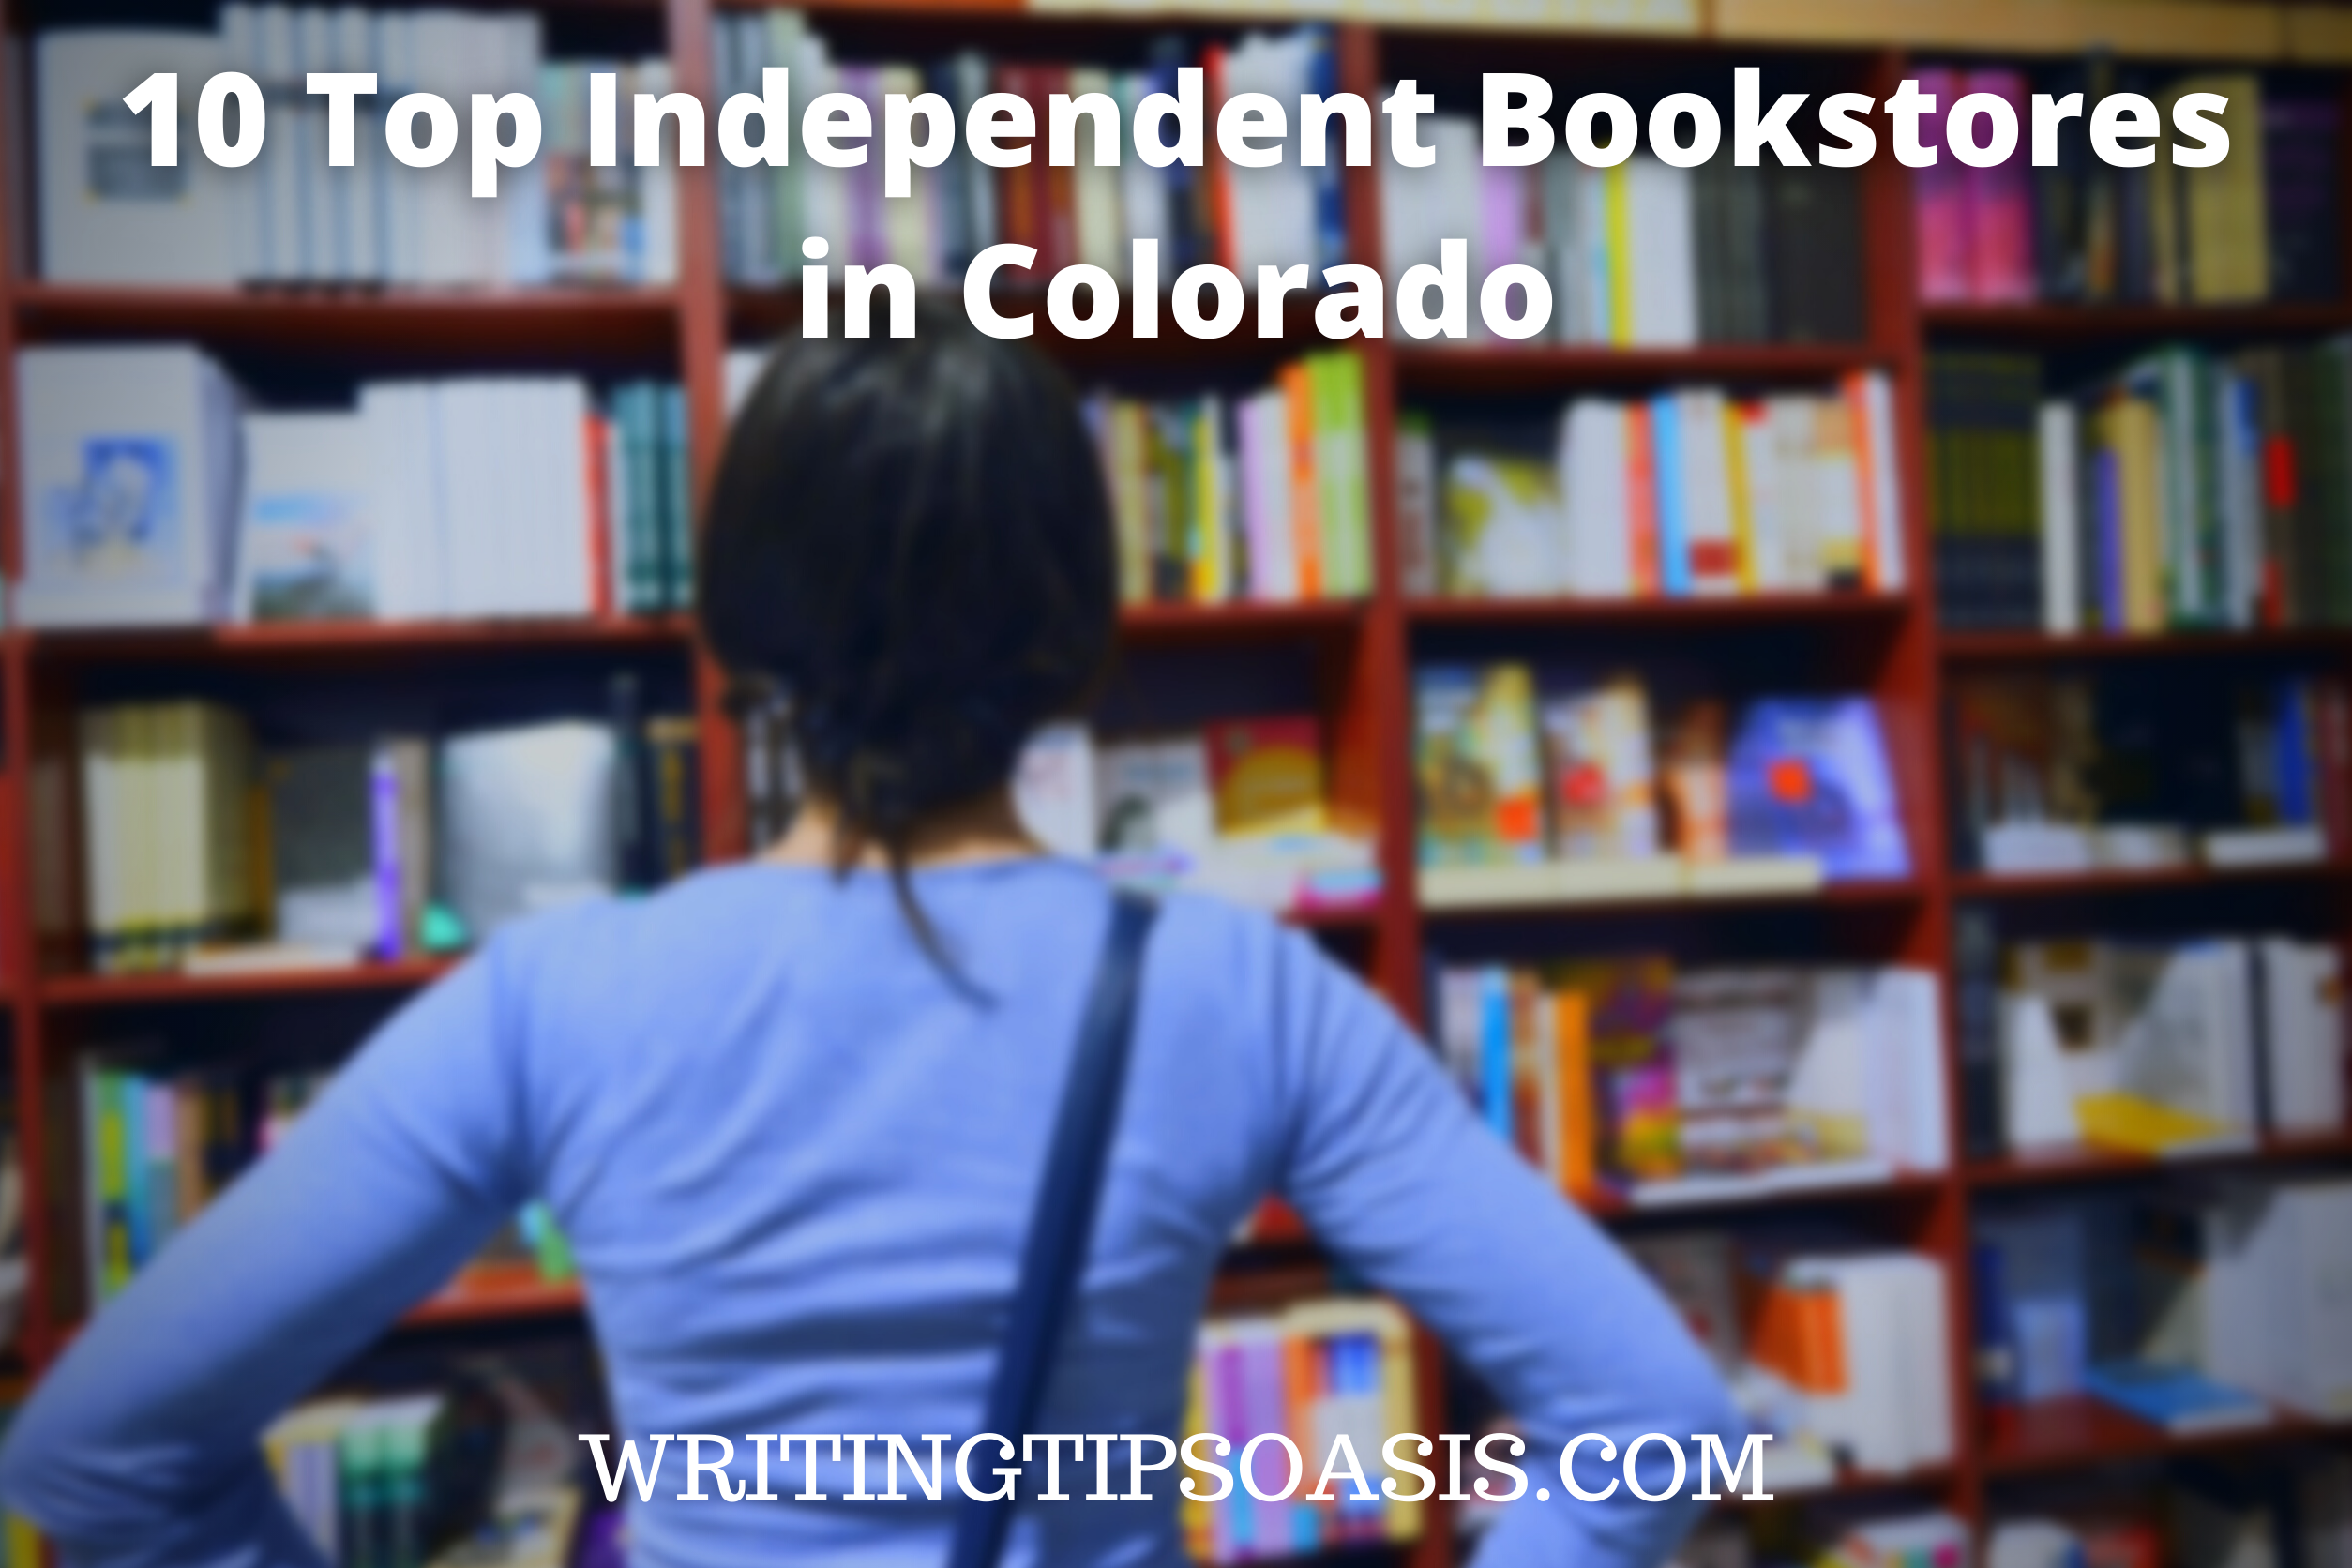 independent bookstores in Colorado